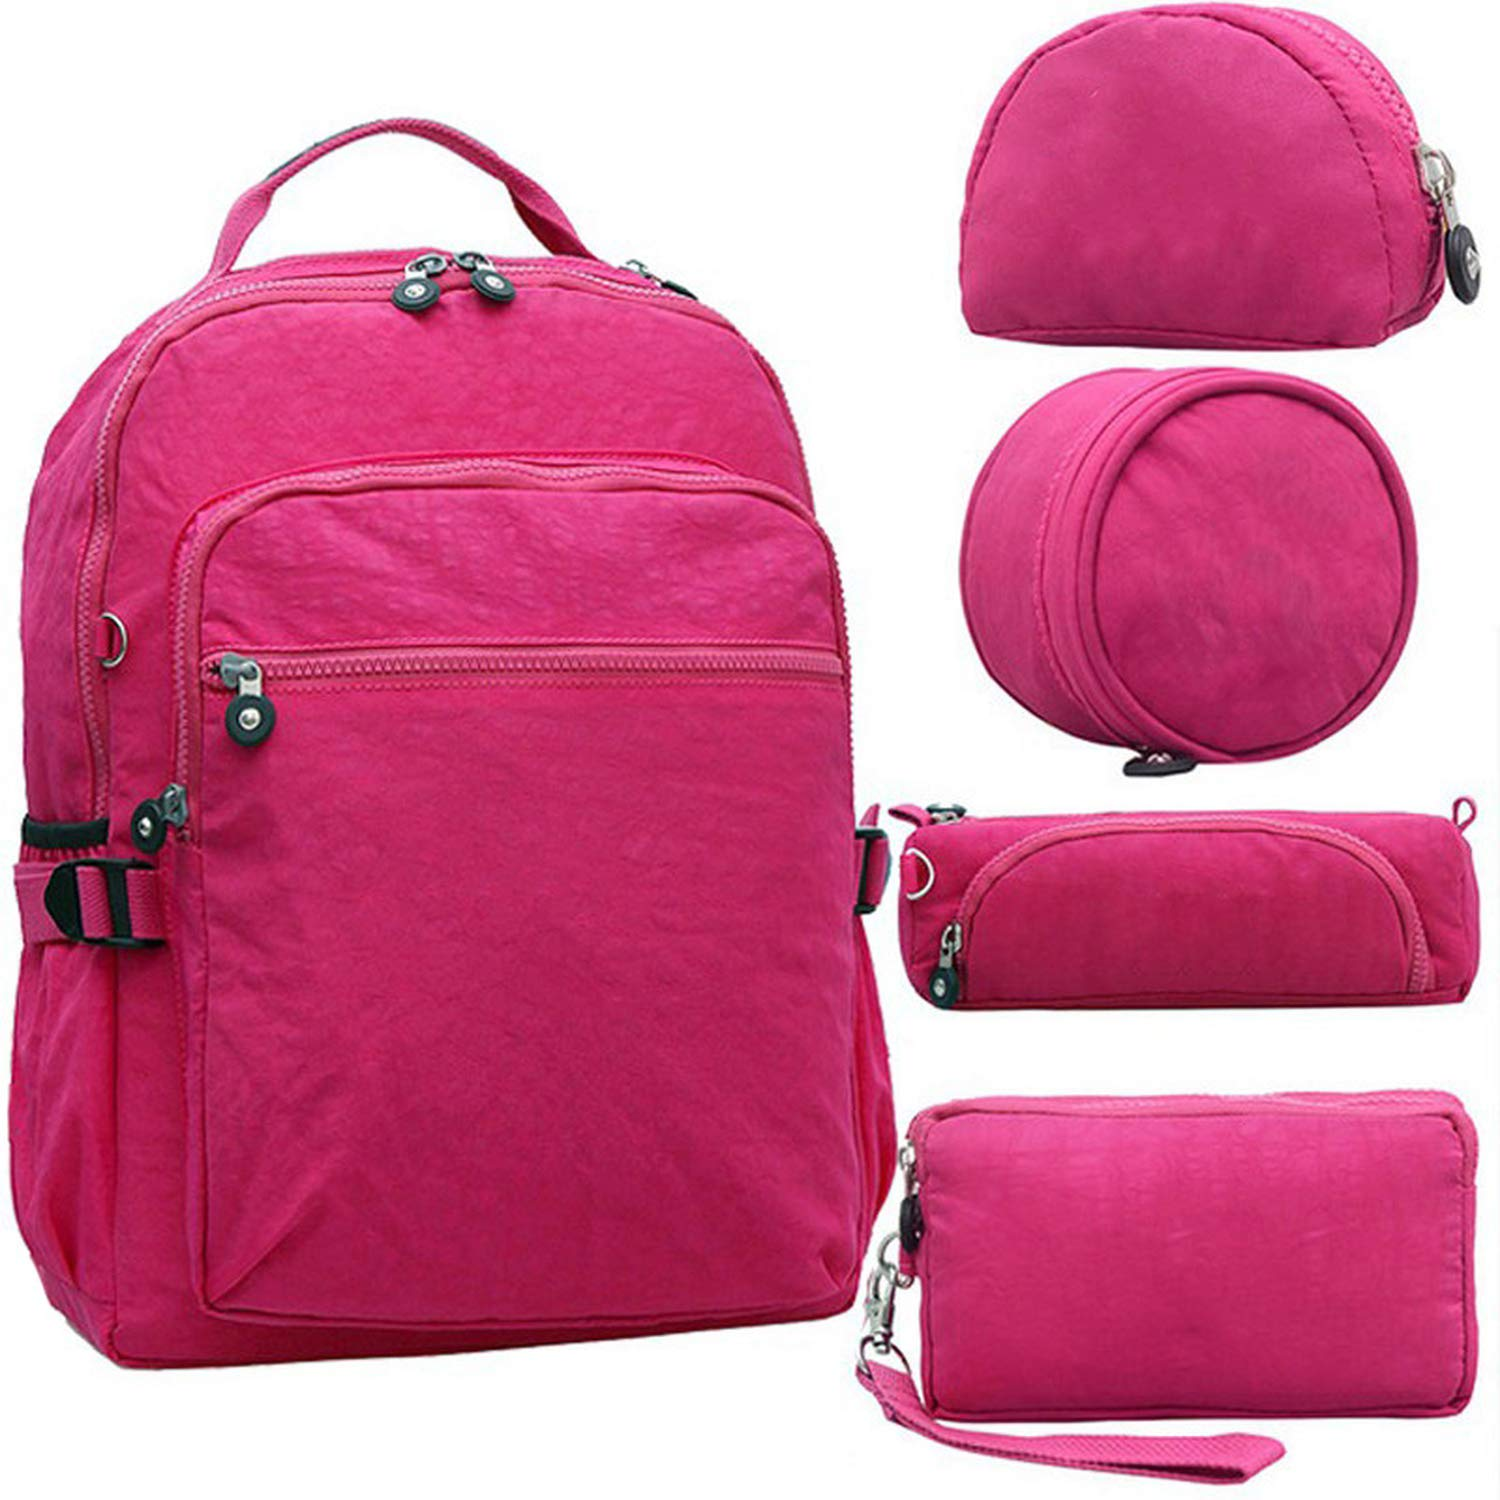 Amazon.com: 5pcs/set Casual Original School Backpack for Teenage Kiple Mochila Escolar Travel Bag Backpack for Laptop With Monkey Keychain,5PCS Rose Red: ...